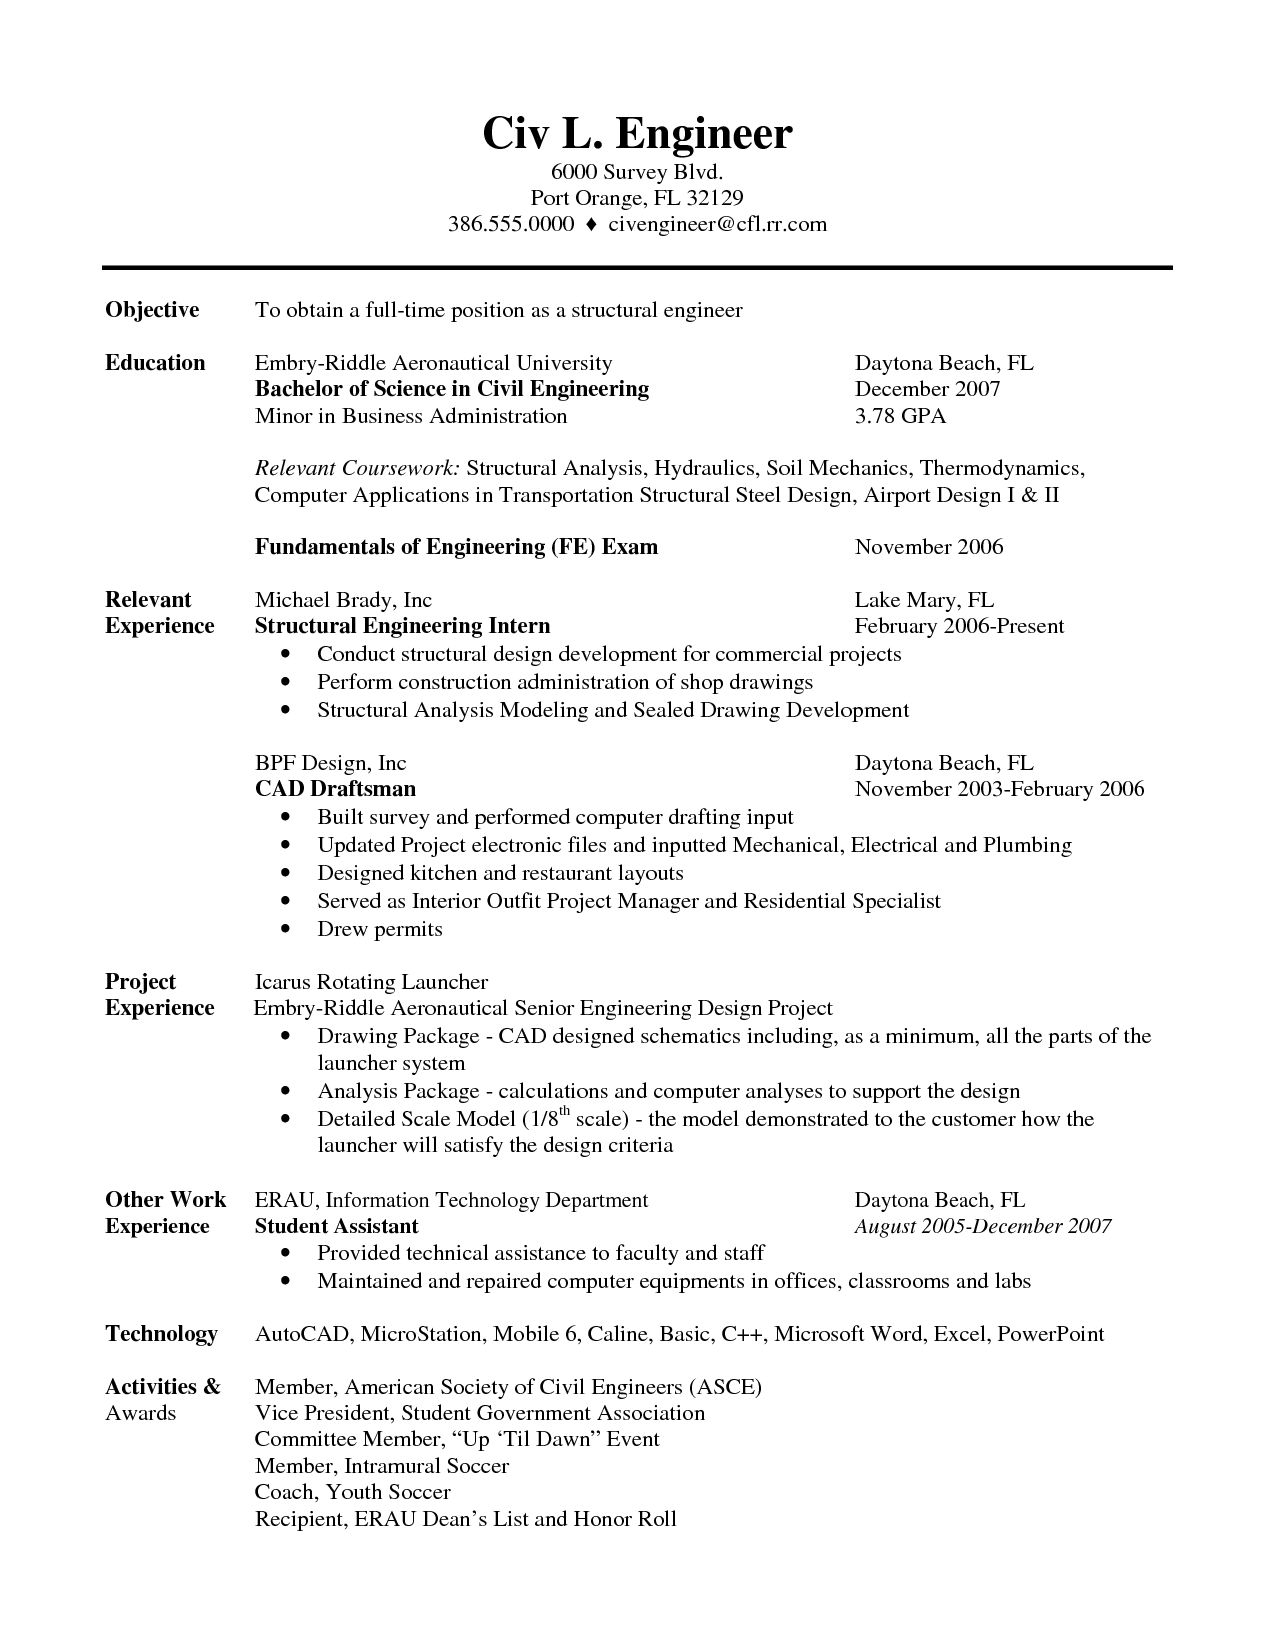 Service Engineer Resume Format Image Result For Mechanical Engineering Student Resume